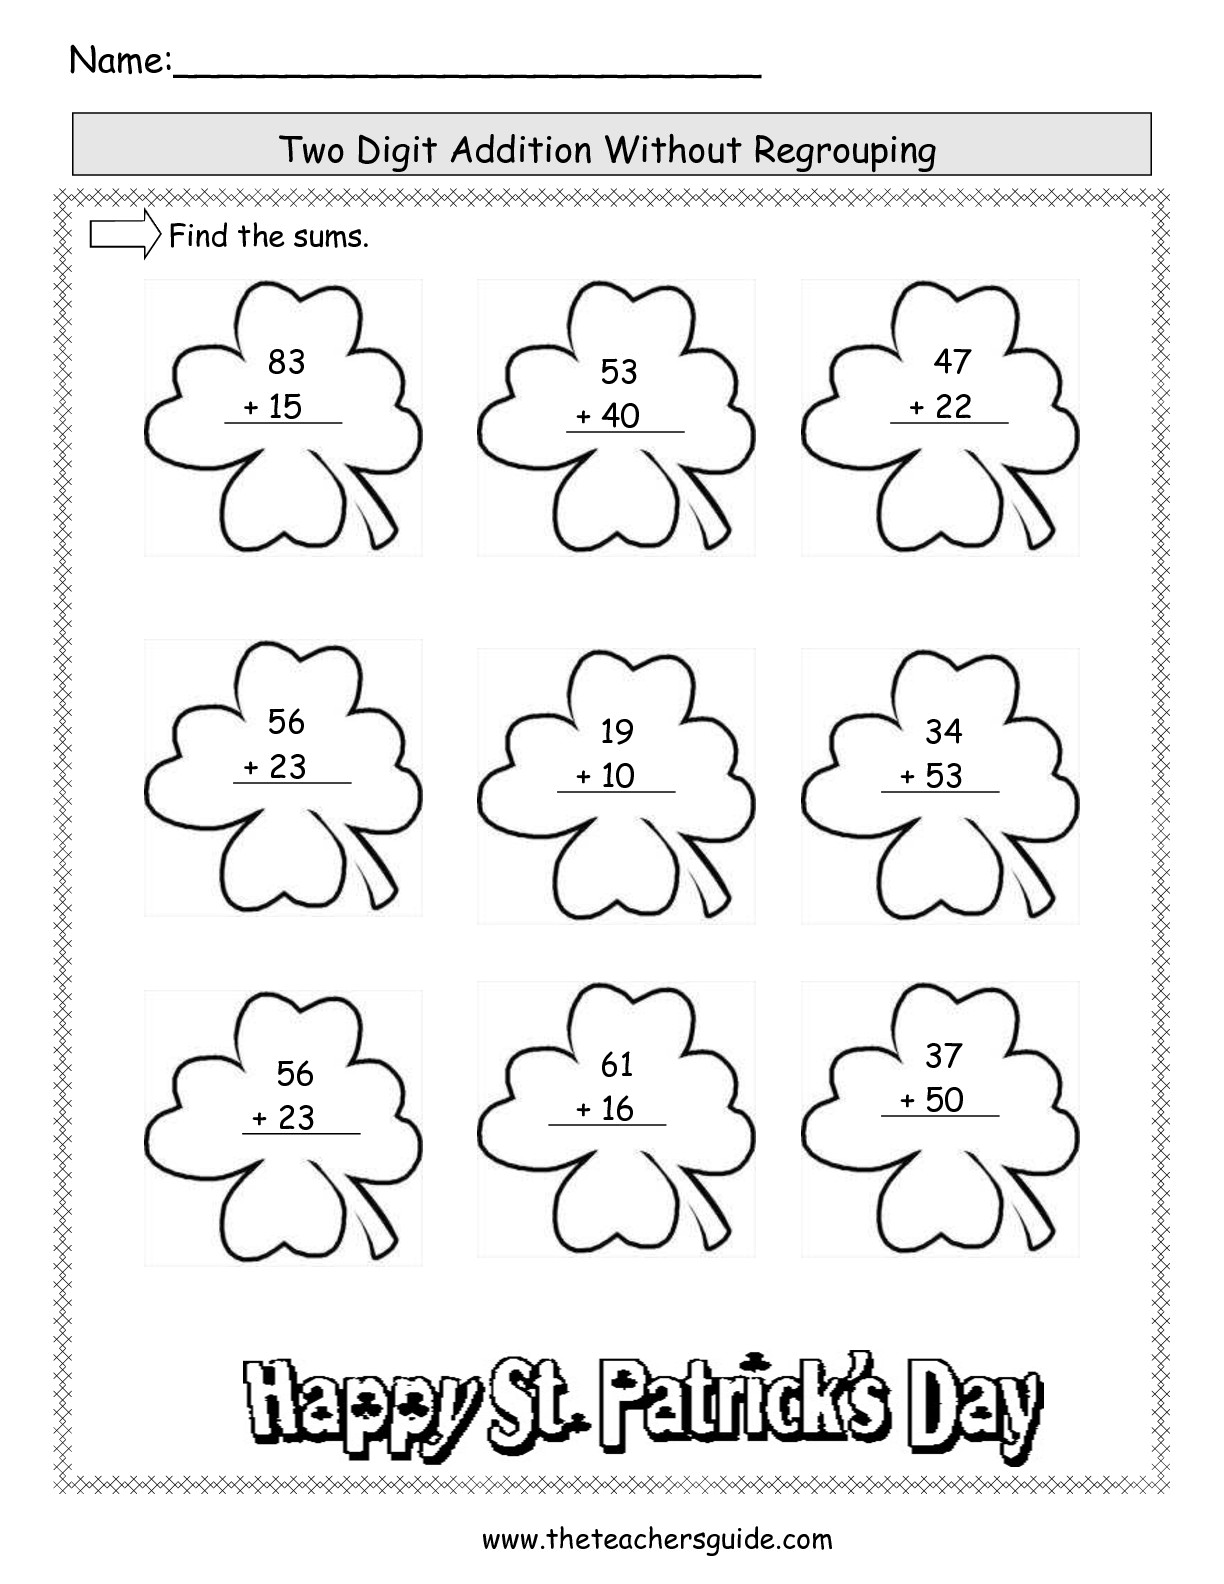 19 Best Images Of 2 Digit Addition Worksheets No